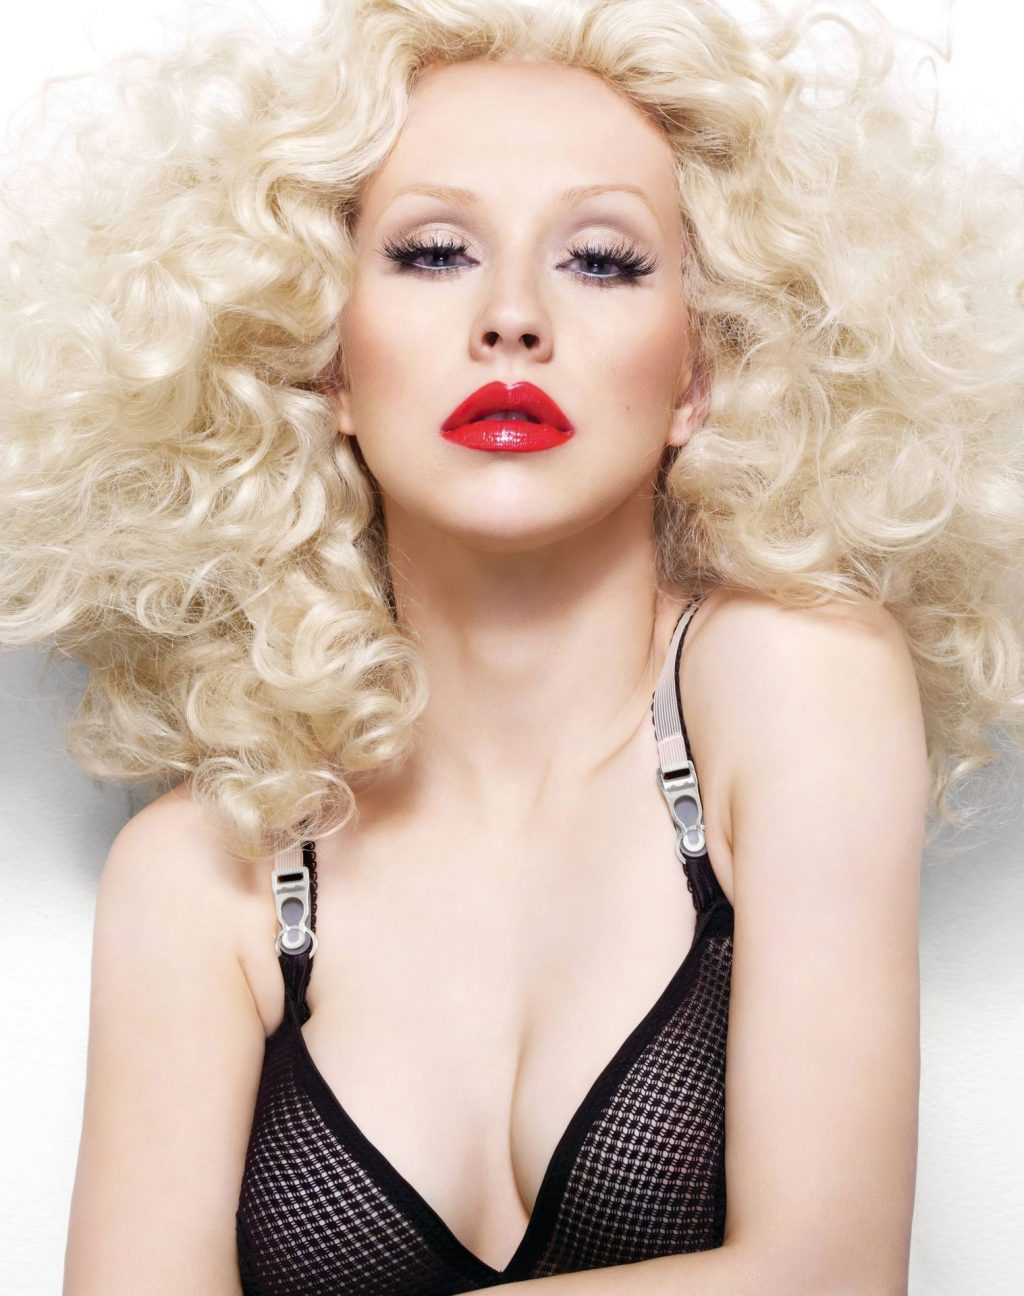 Christina Aguilera Nude & Sexy (32 Photos)